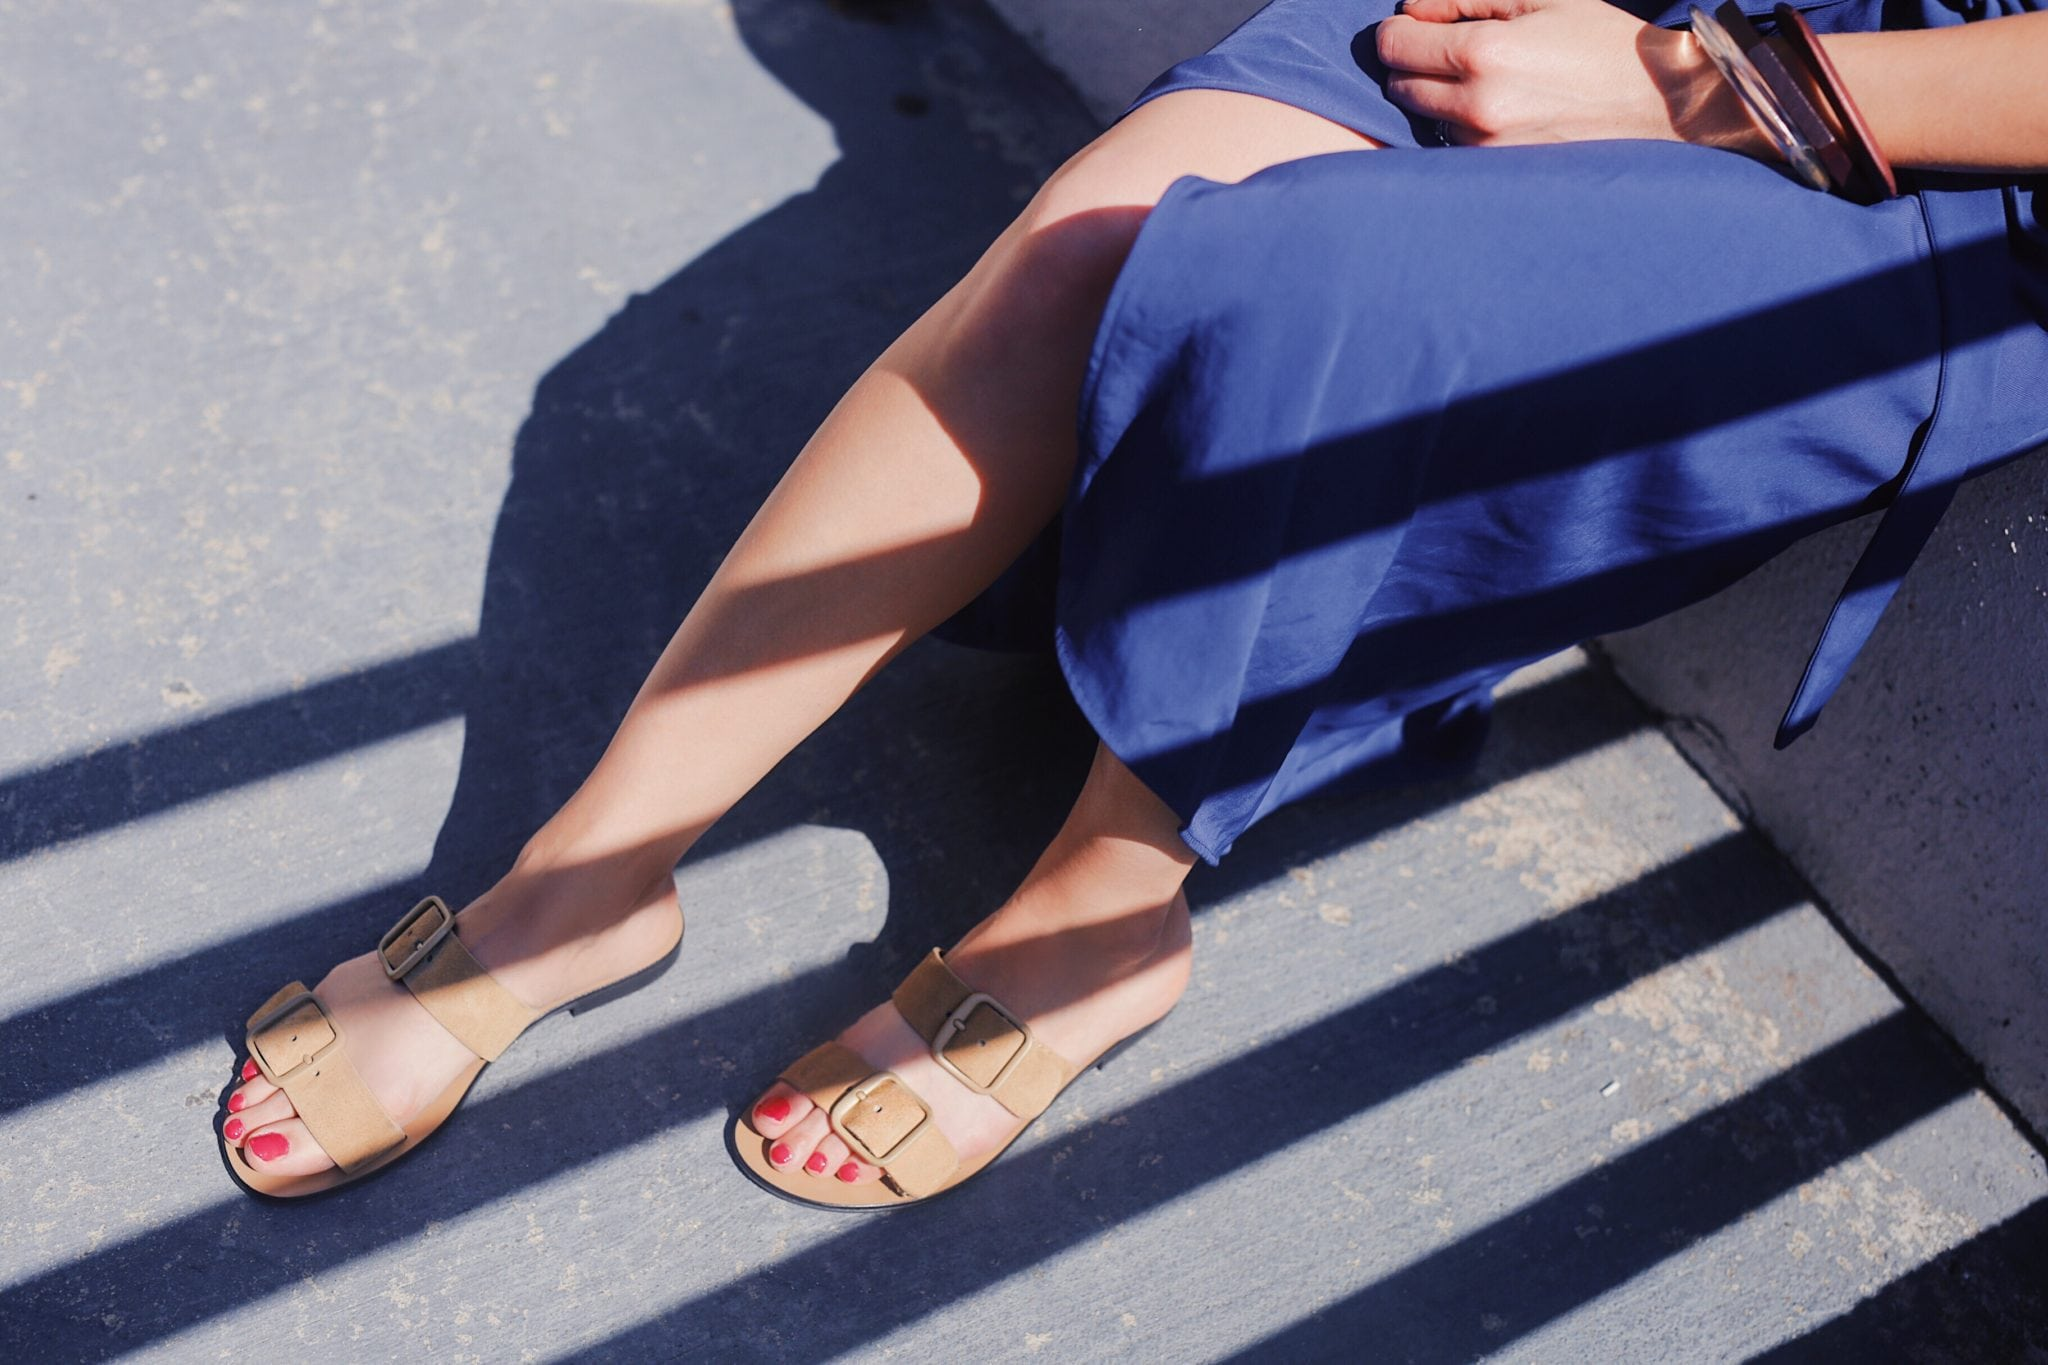 Minimalist sandals for women - Everlane Modern Buckle Sandal - See a selection of modern sandals for women on Houseofcomil.com